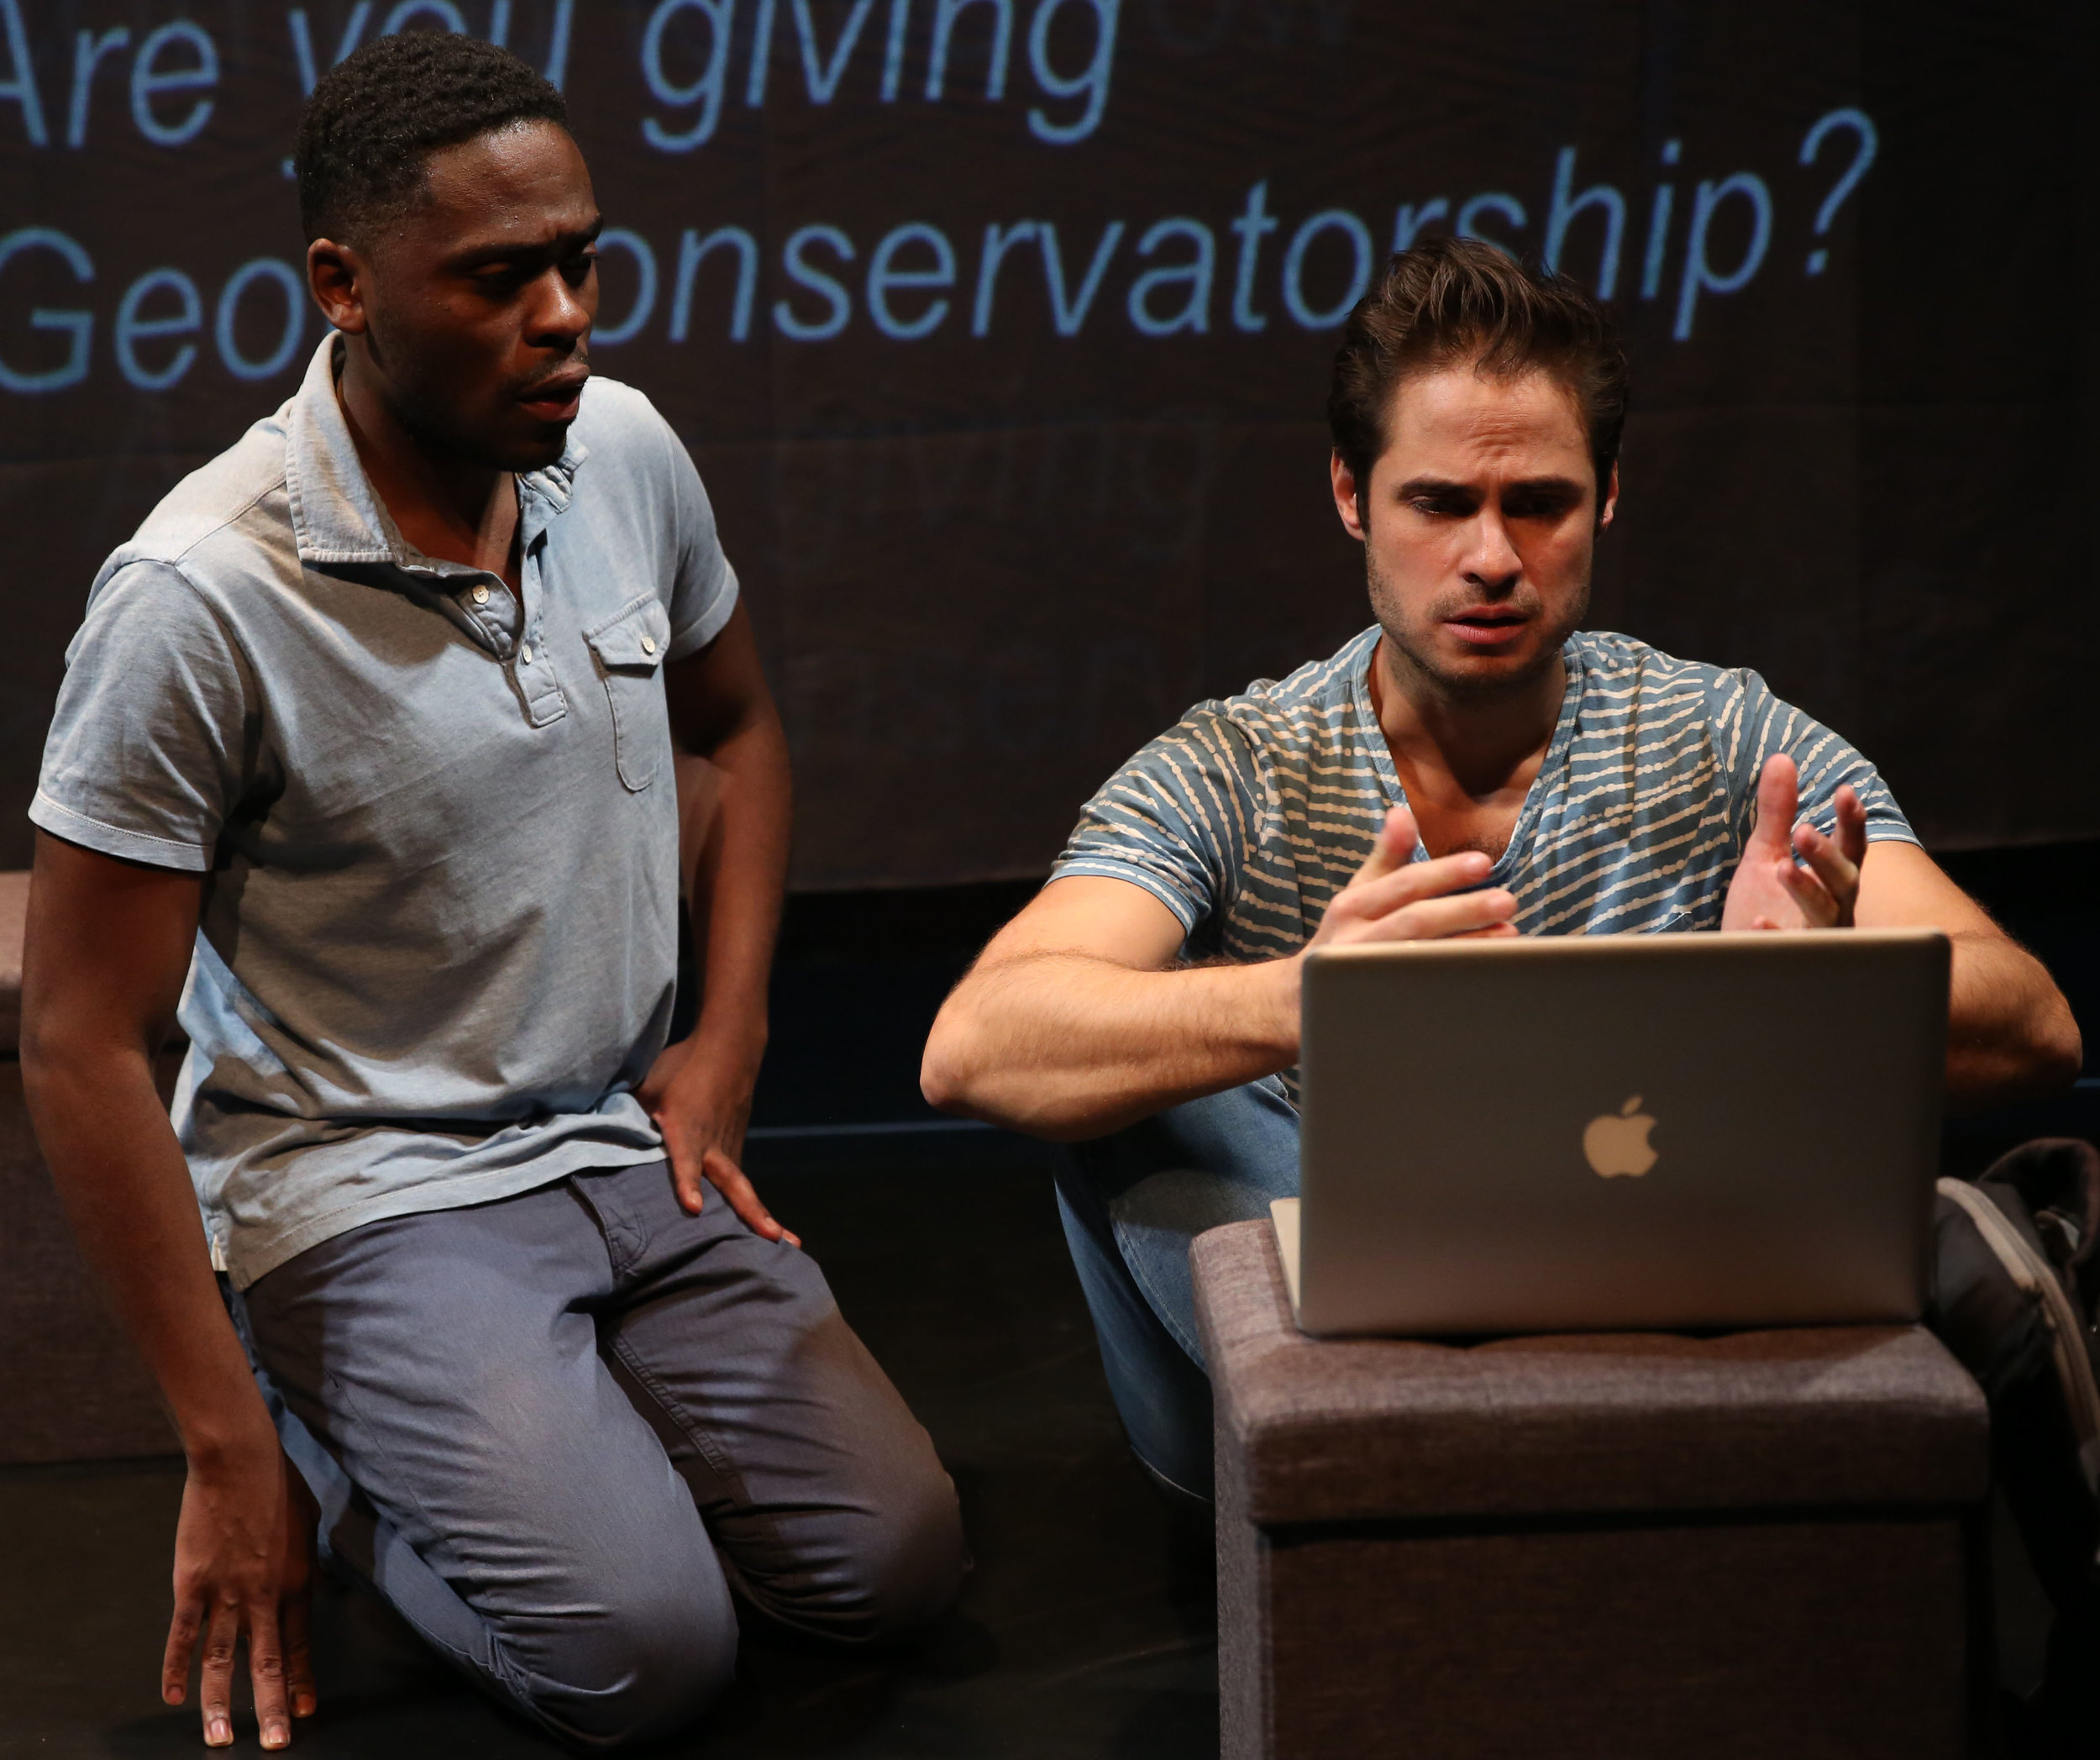 Julian Joseph (left) plays Tyler, and Marc Sinoway plays Paolo in Charles Gershman's  The Waiting Game.  Top: Sinoway with Joshua Bouchard as Geoff.